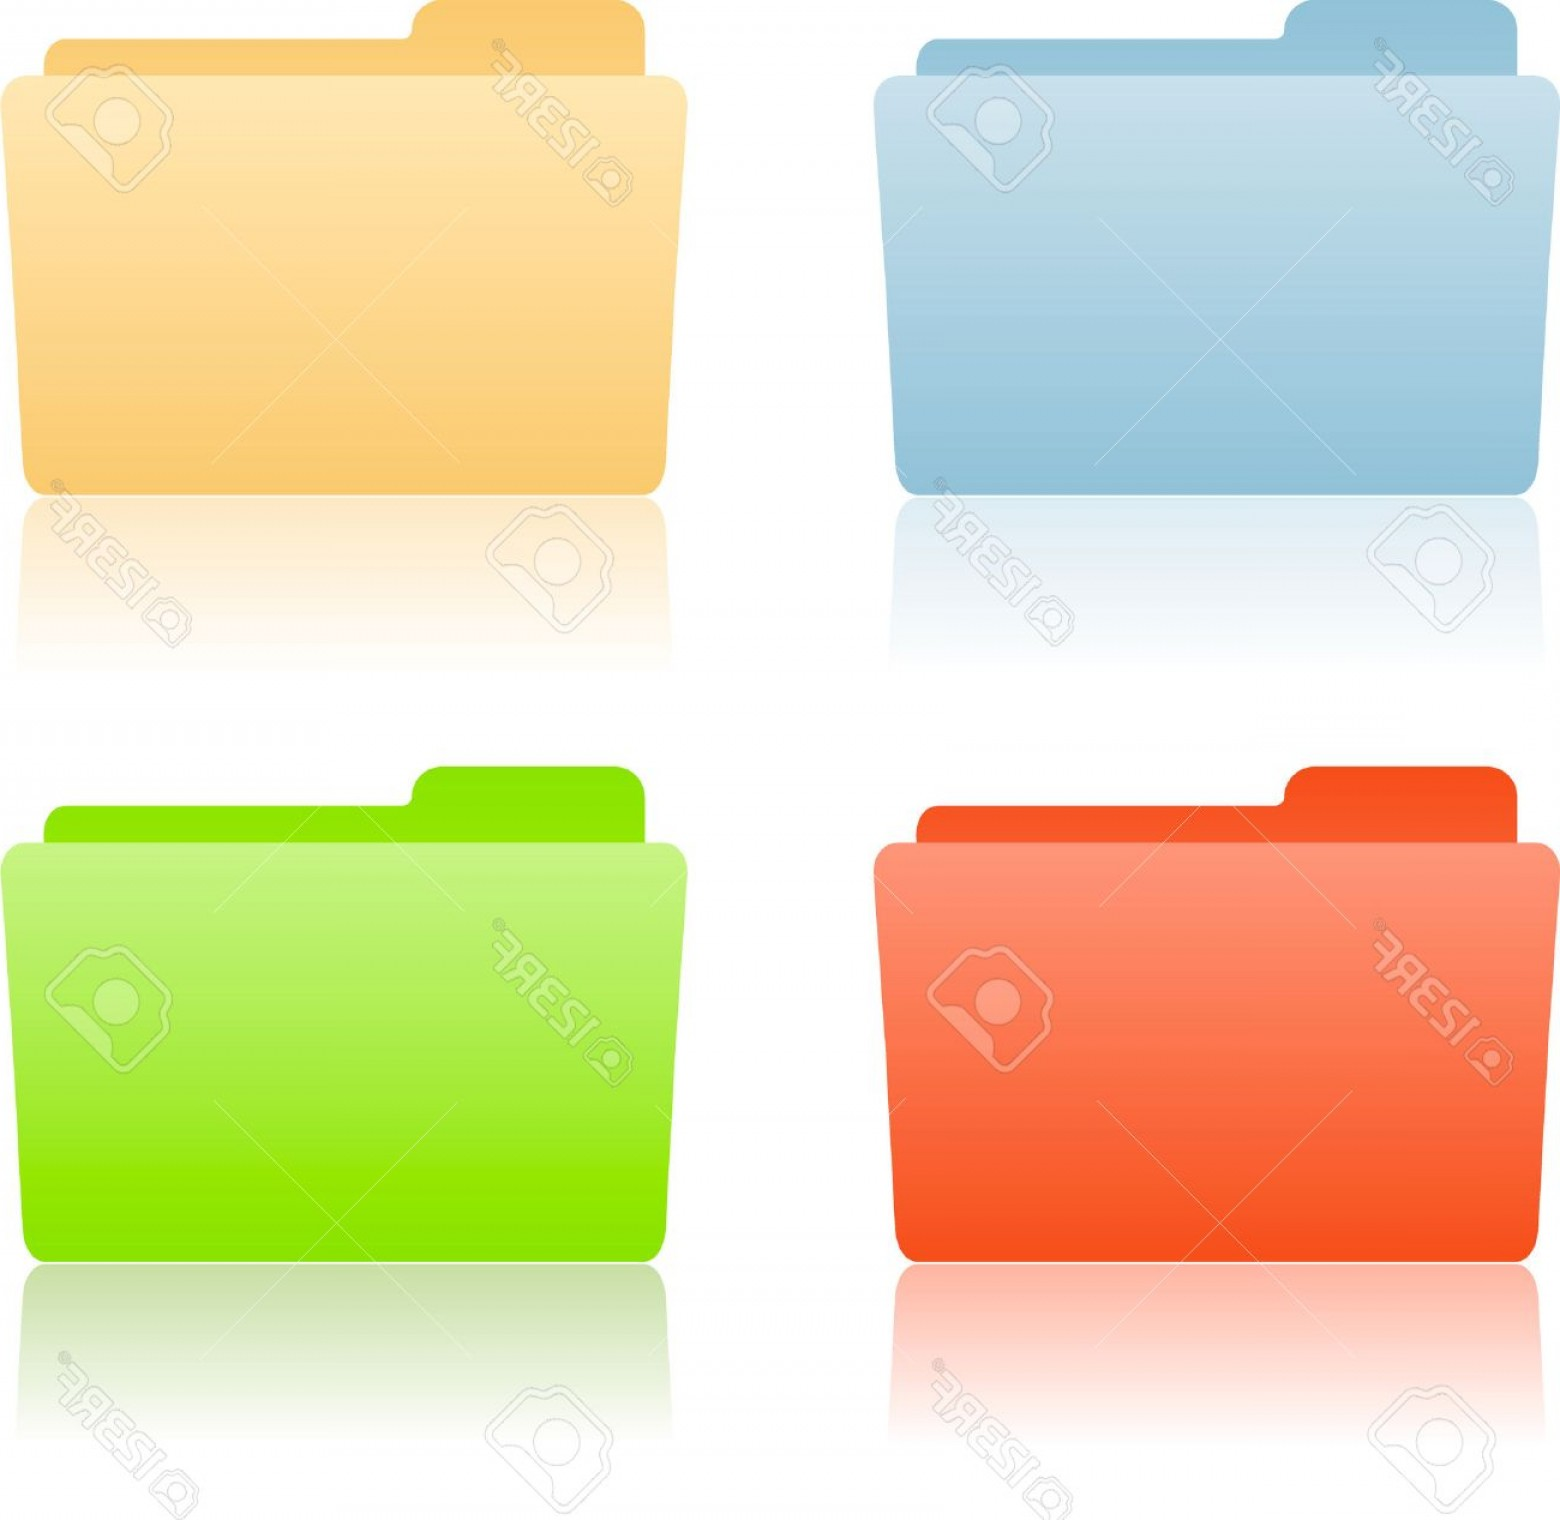 Folder Tab Vectors: Photofile Folder With Place For Label